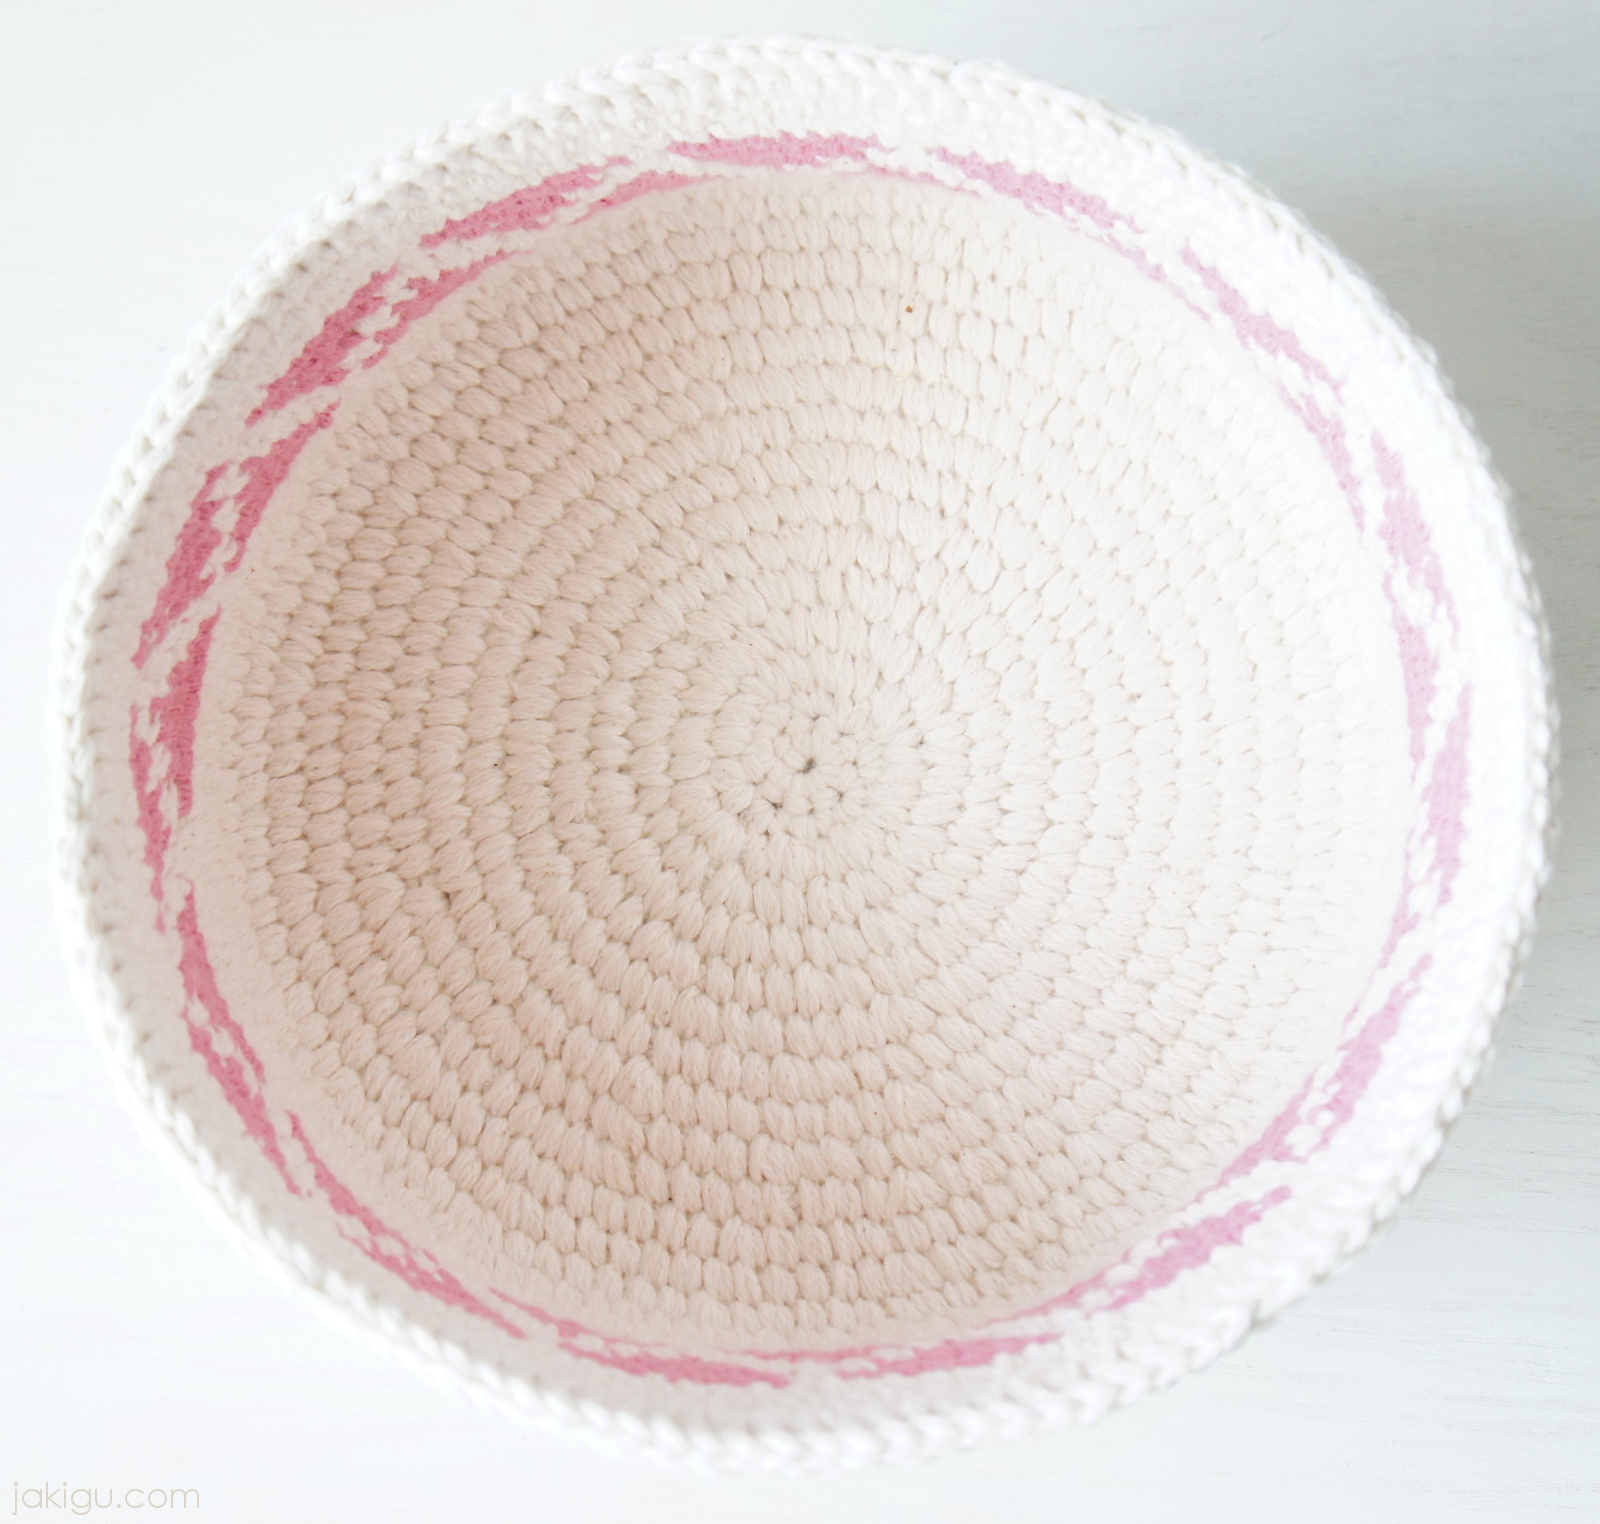 Contemporary crochet basket with triangles and chevron detail crochet basket with pink triangles and chevron geometric detail jakigu crochet pattern 308 dt1010fo